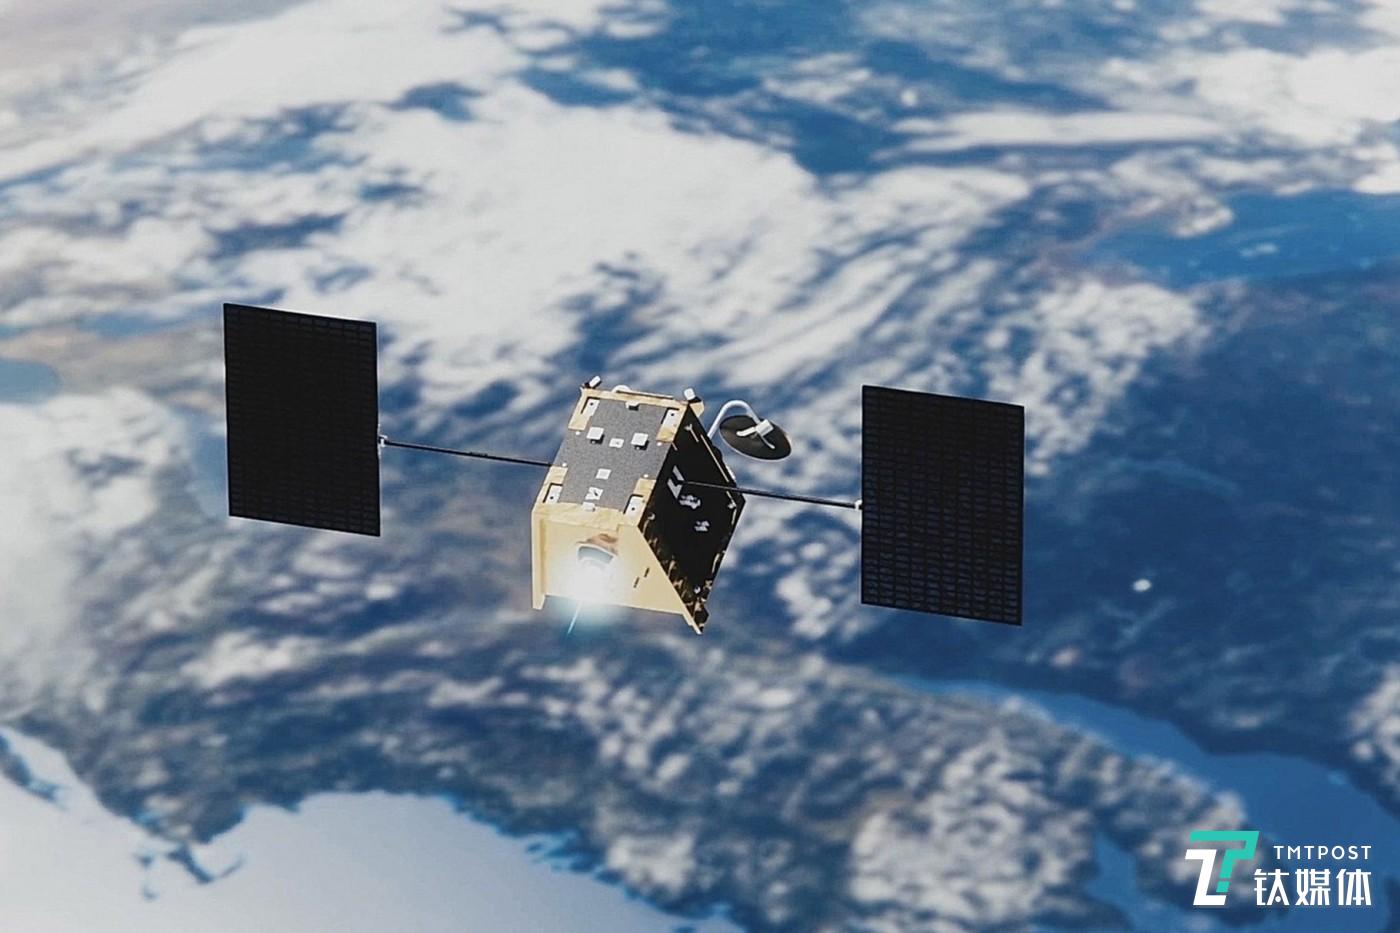 one of OneWeb's satellites might look like in space